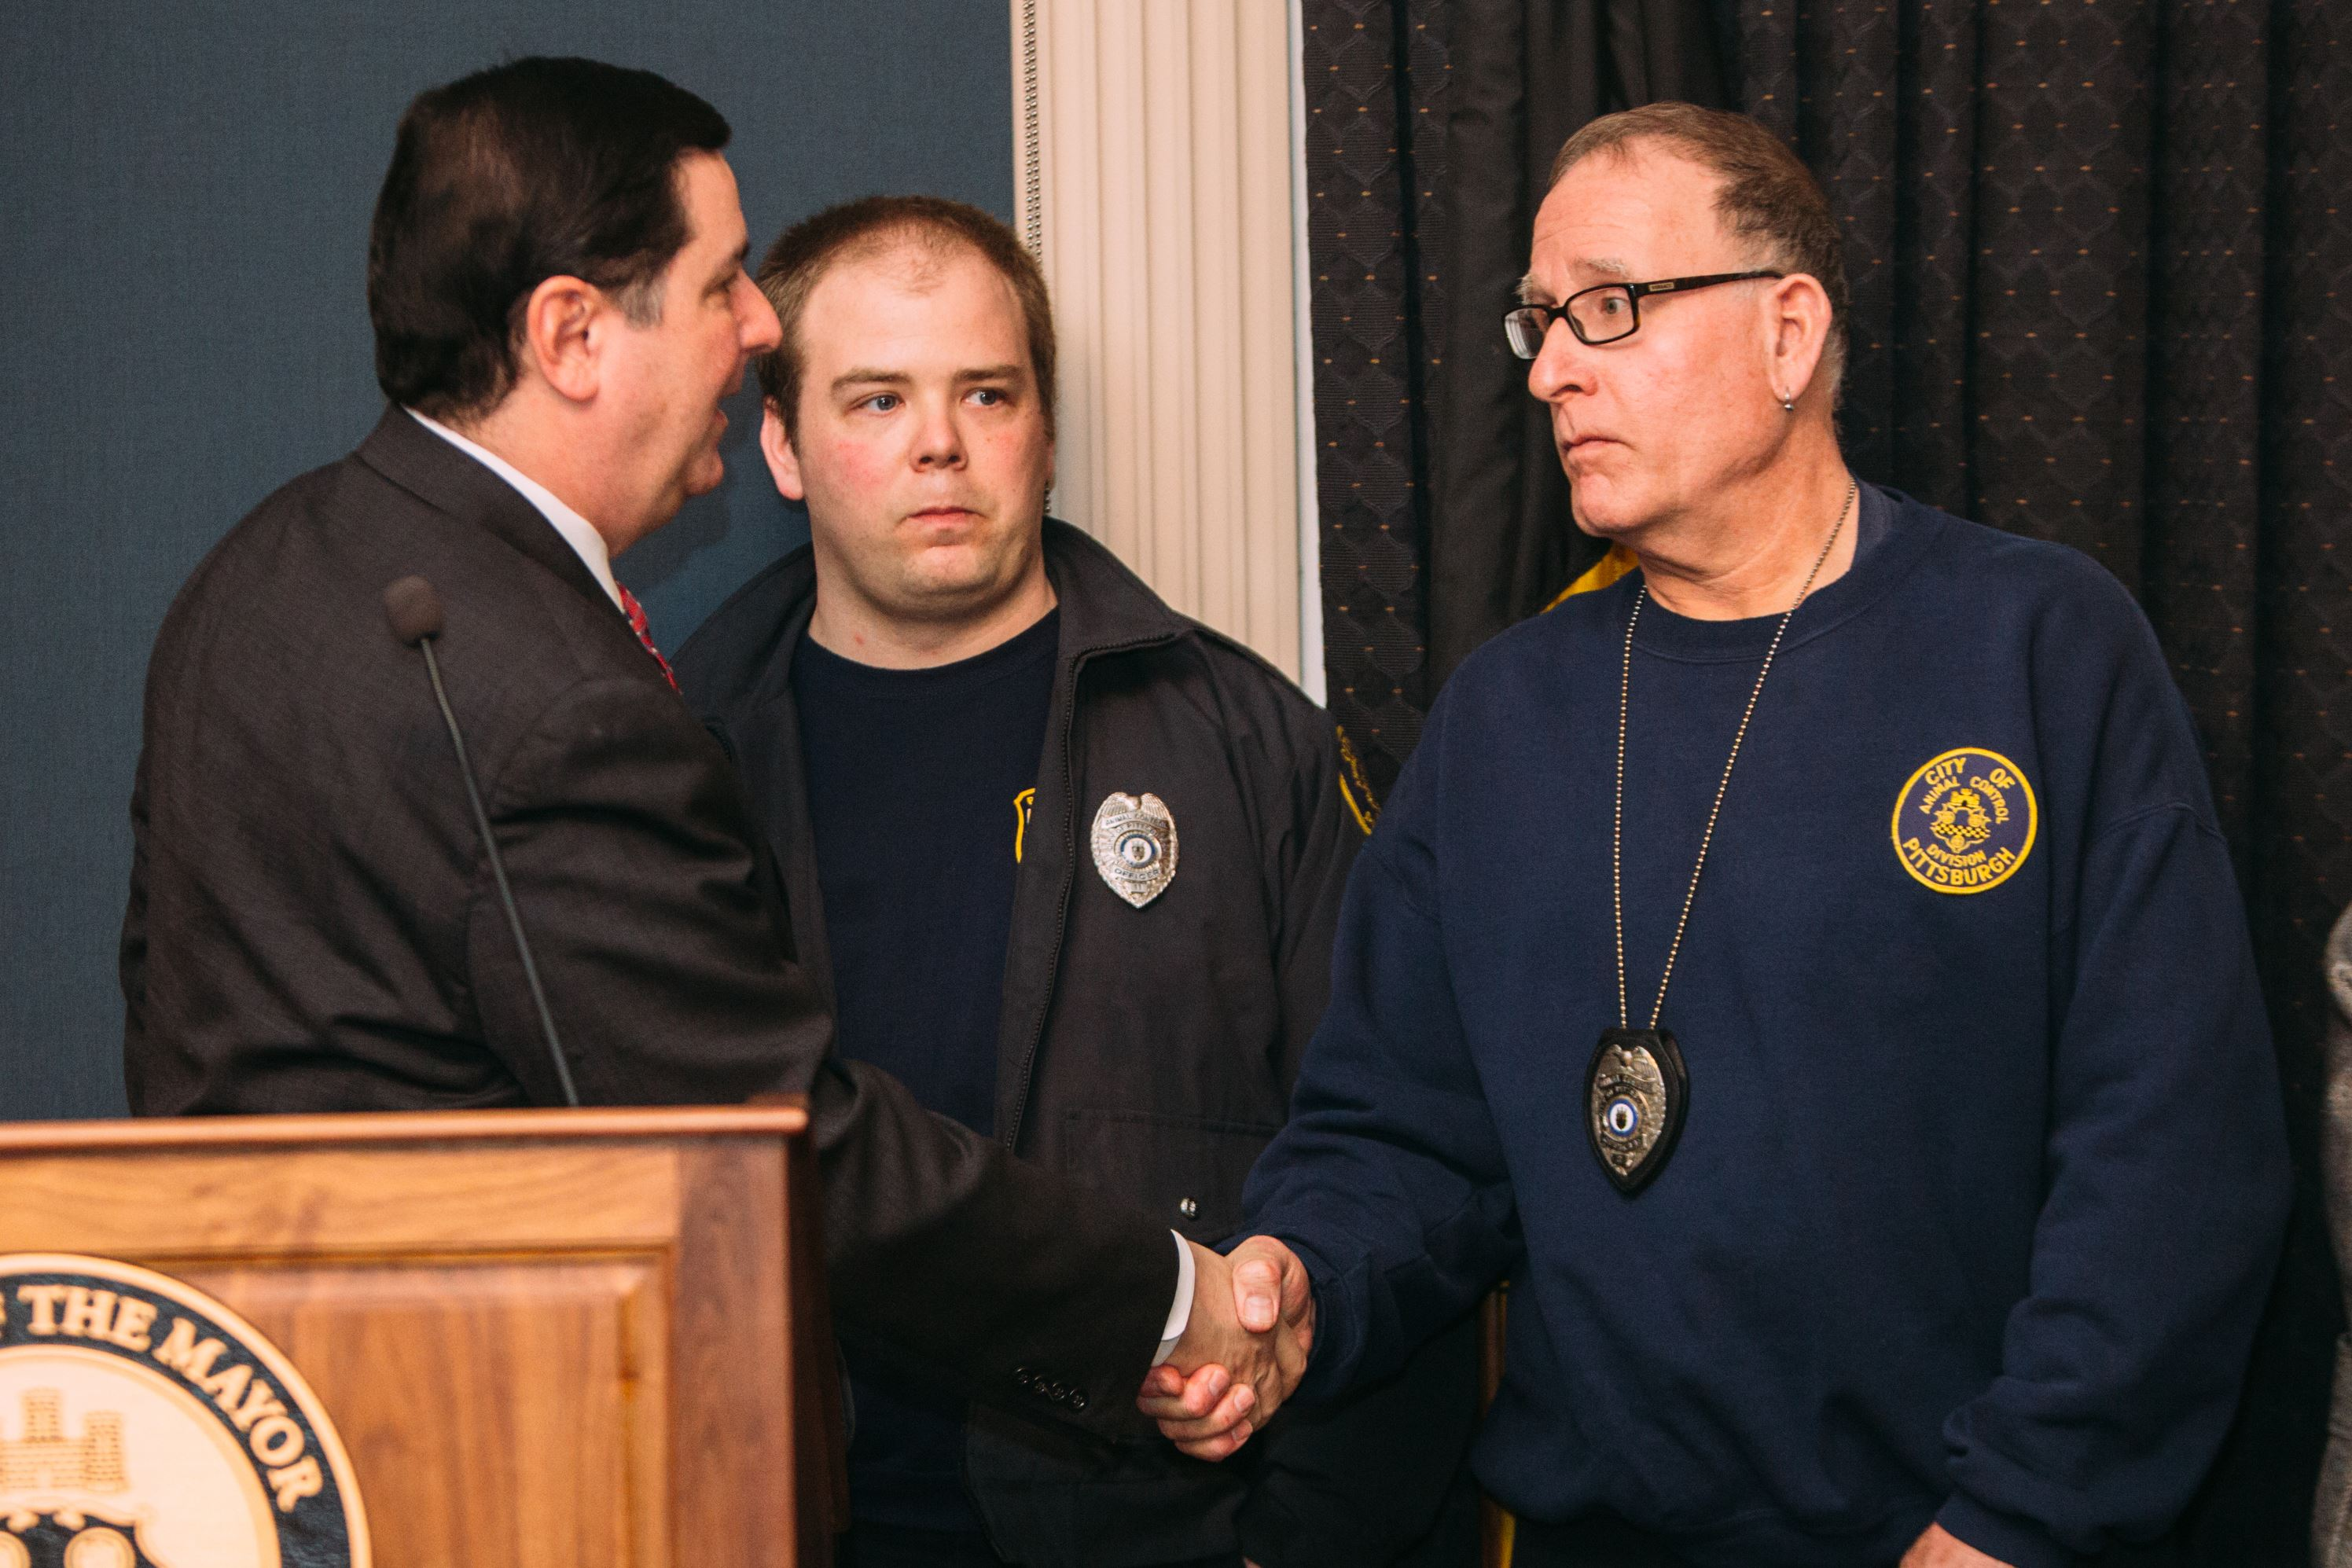 Mayor Bill Peduto greets Jeff Ley, left, and John Lapp Mayor Bill Peduto greets Jeff Ley, left, and John Lapp, both animal control officers, after a news conference to recognize the city's Animal Care and Control department for successfully returning Mr. Karl's dog.